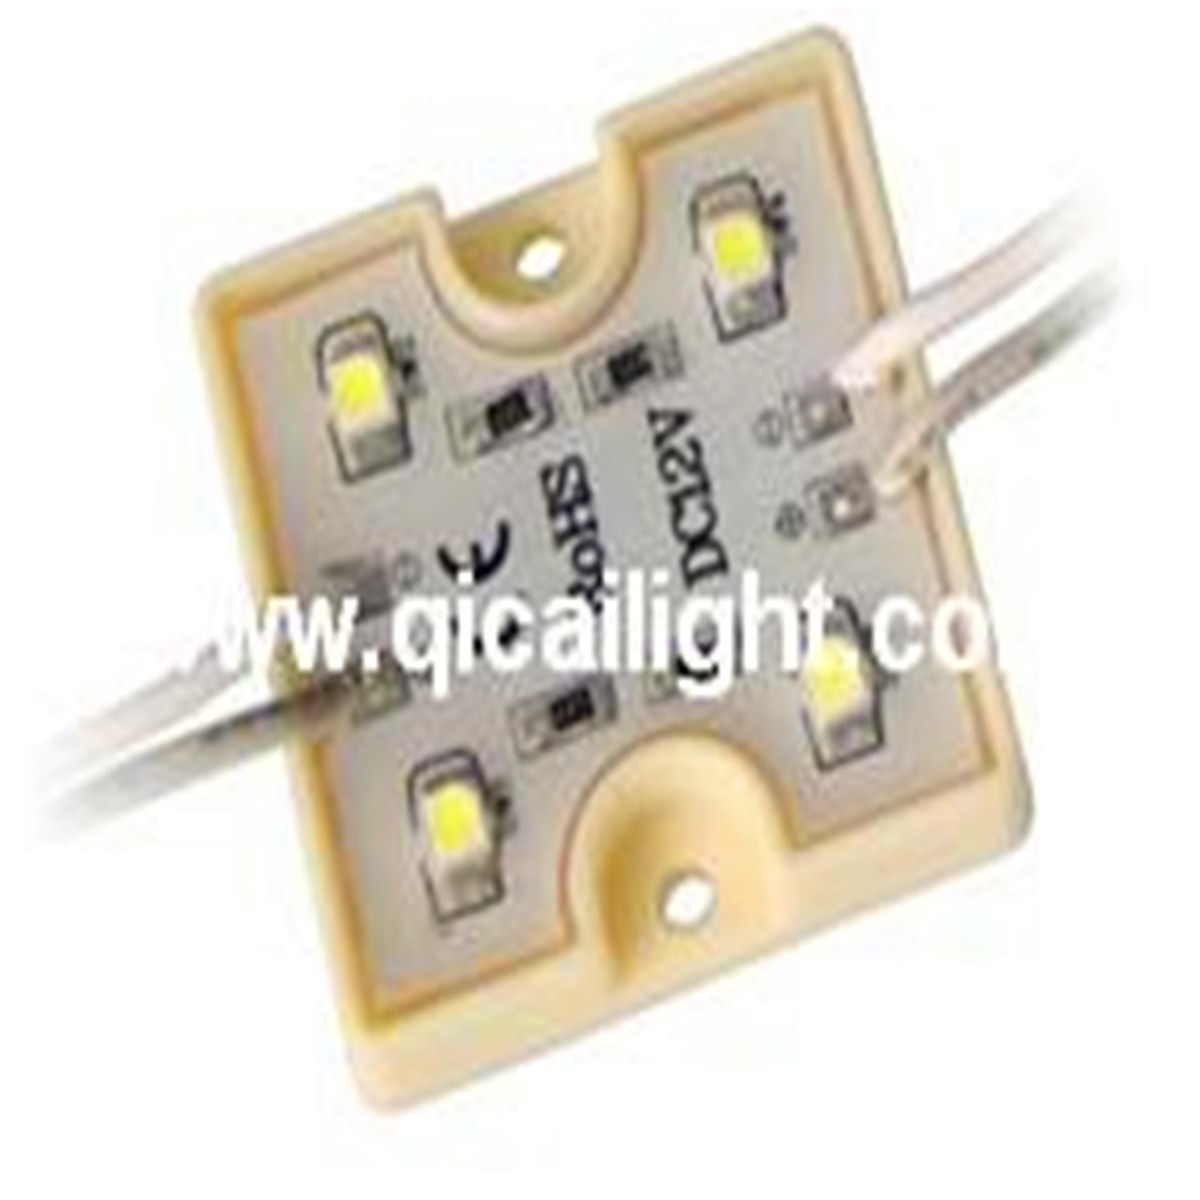 5050 Waterproof LED Module 3LED/PCS